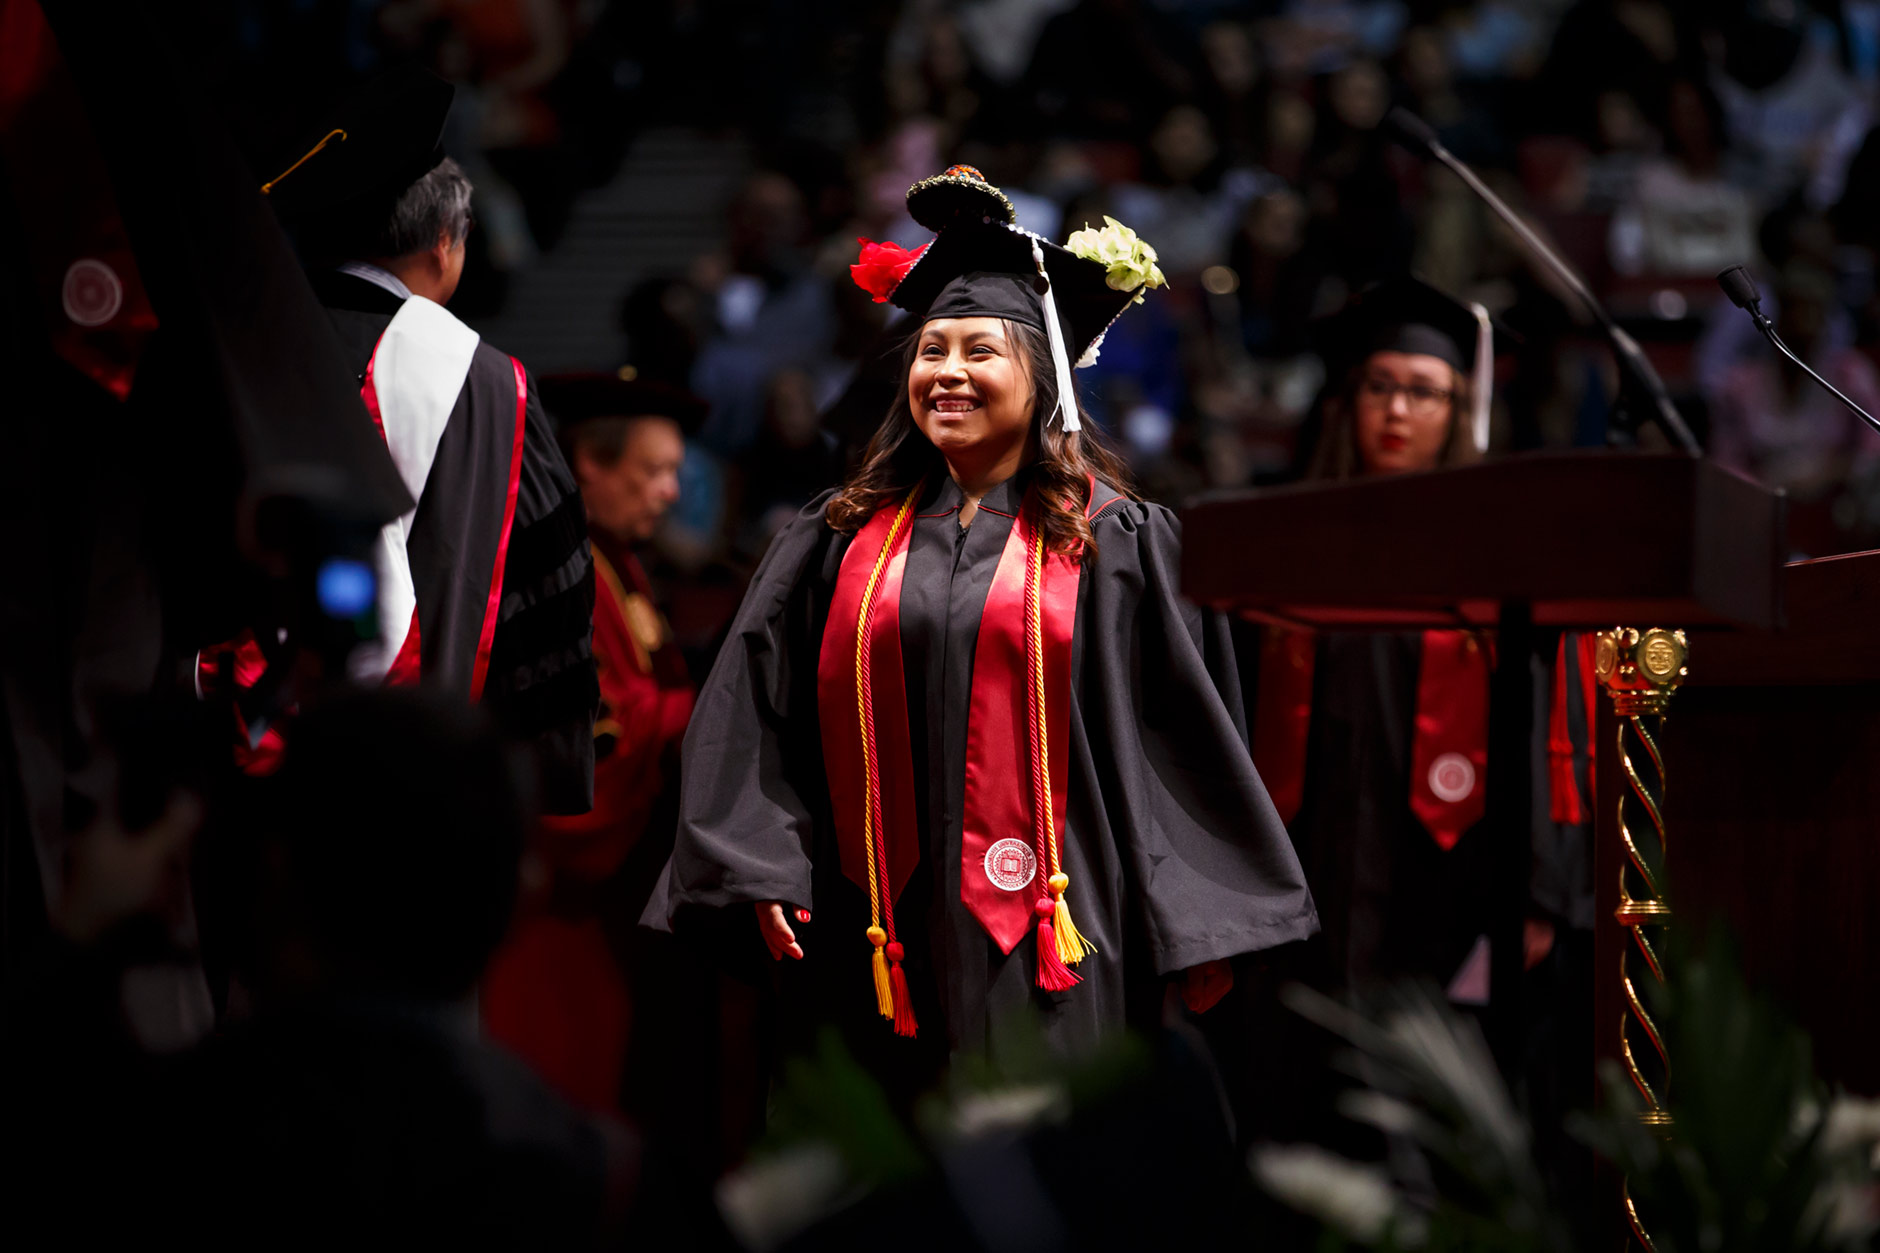 Graduate Gabriela Jaimes walks across the stage to receive her degree during the Indiana University Northwest Commencement at the Genesis Convention Center in Gary on Thursday, May 10, 2018. (James Brosher/IU Communications)